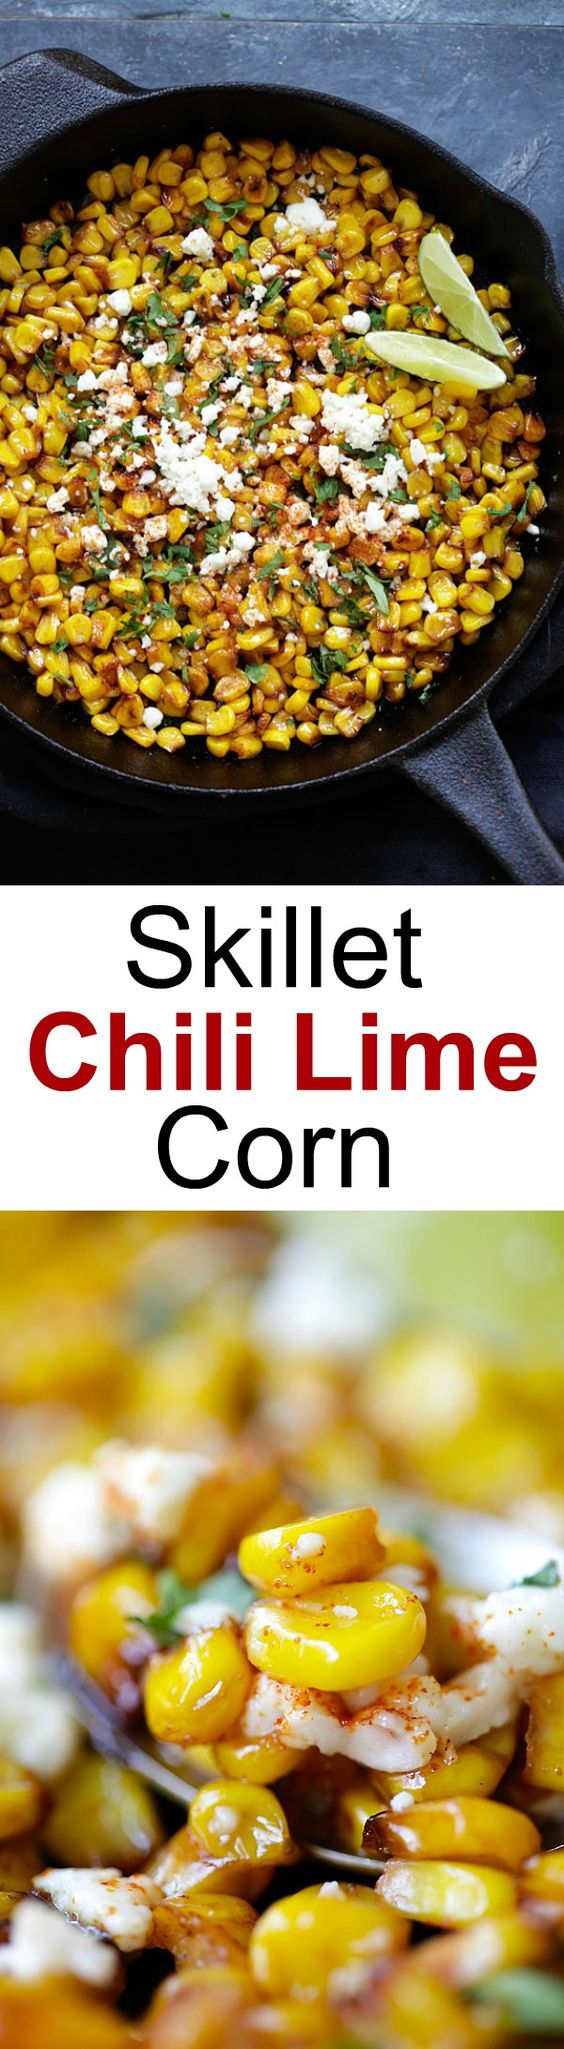 Skillet Chili Lime Corn | Recipe | Skillets, My love and ...